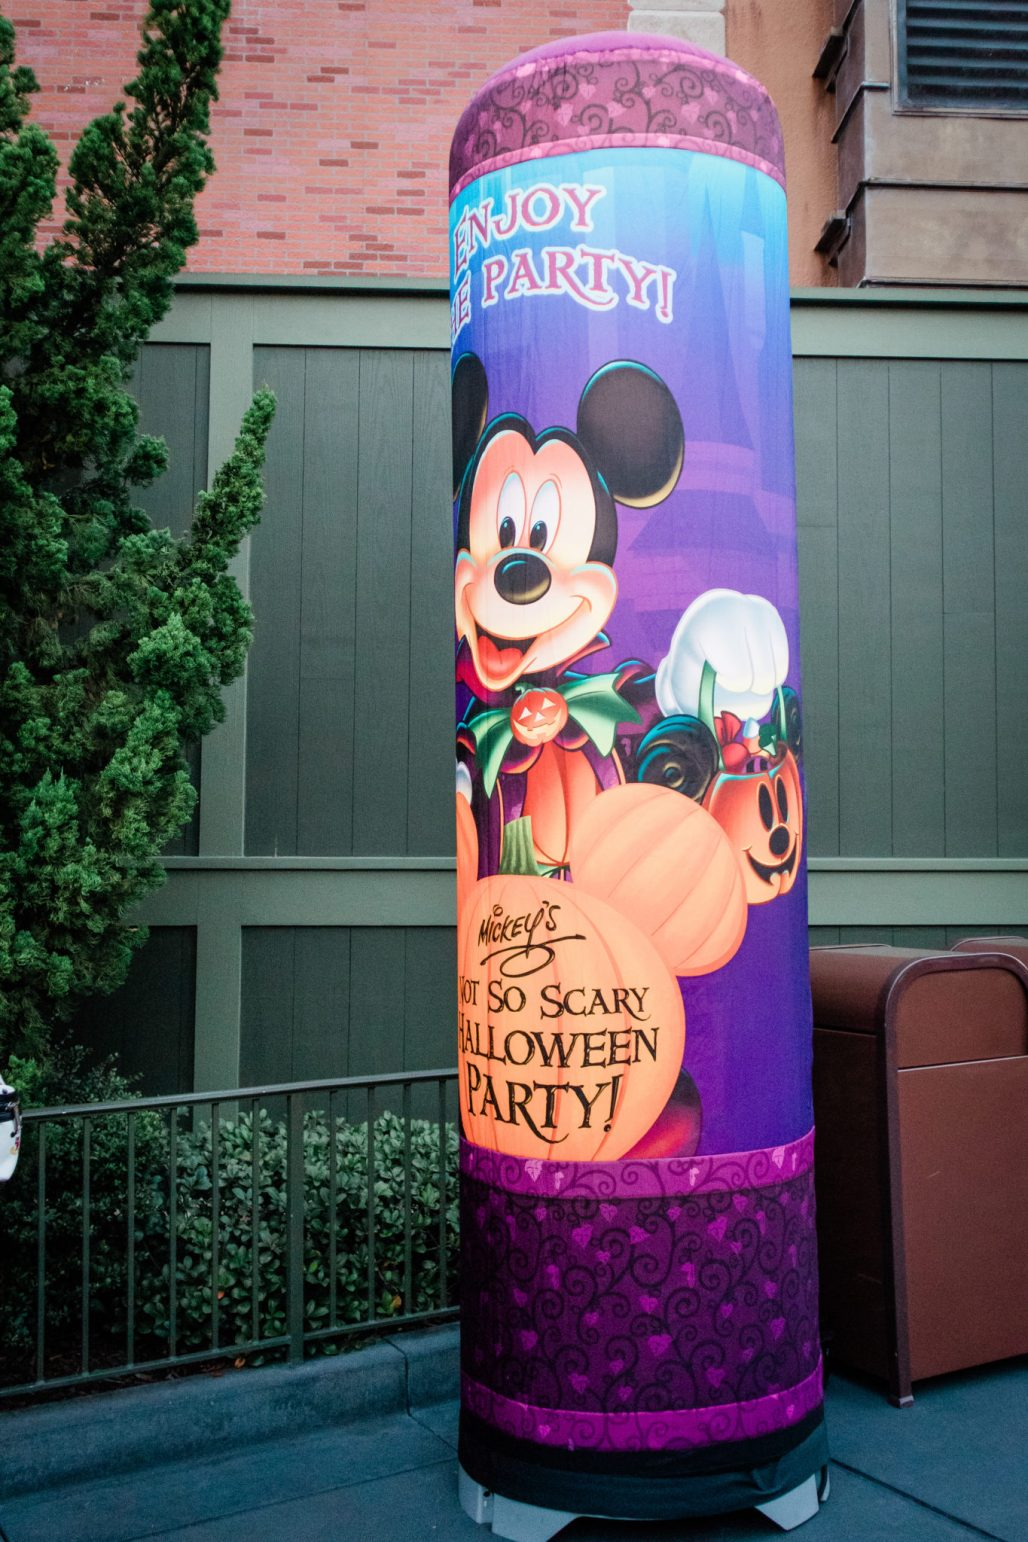 mickey's halloween party tickets for sale, mickey's halloween party 2018 dates, disney world halloween 2018, mnsshp 2018 dates, Tampa parenting blog mothers blog motherhood blog Florida travel blogger travel influencer healthy mom blogger spring hill florida lifestyle parenting blog best mom blog 2018